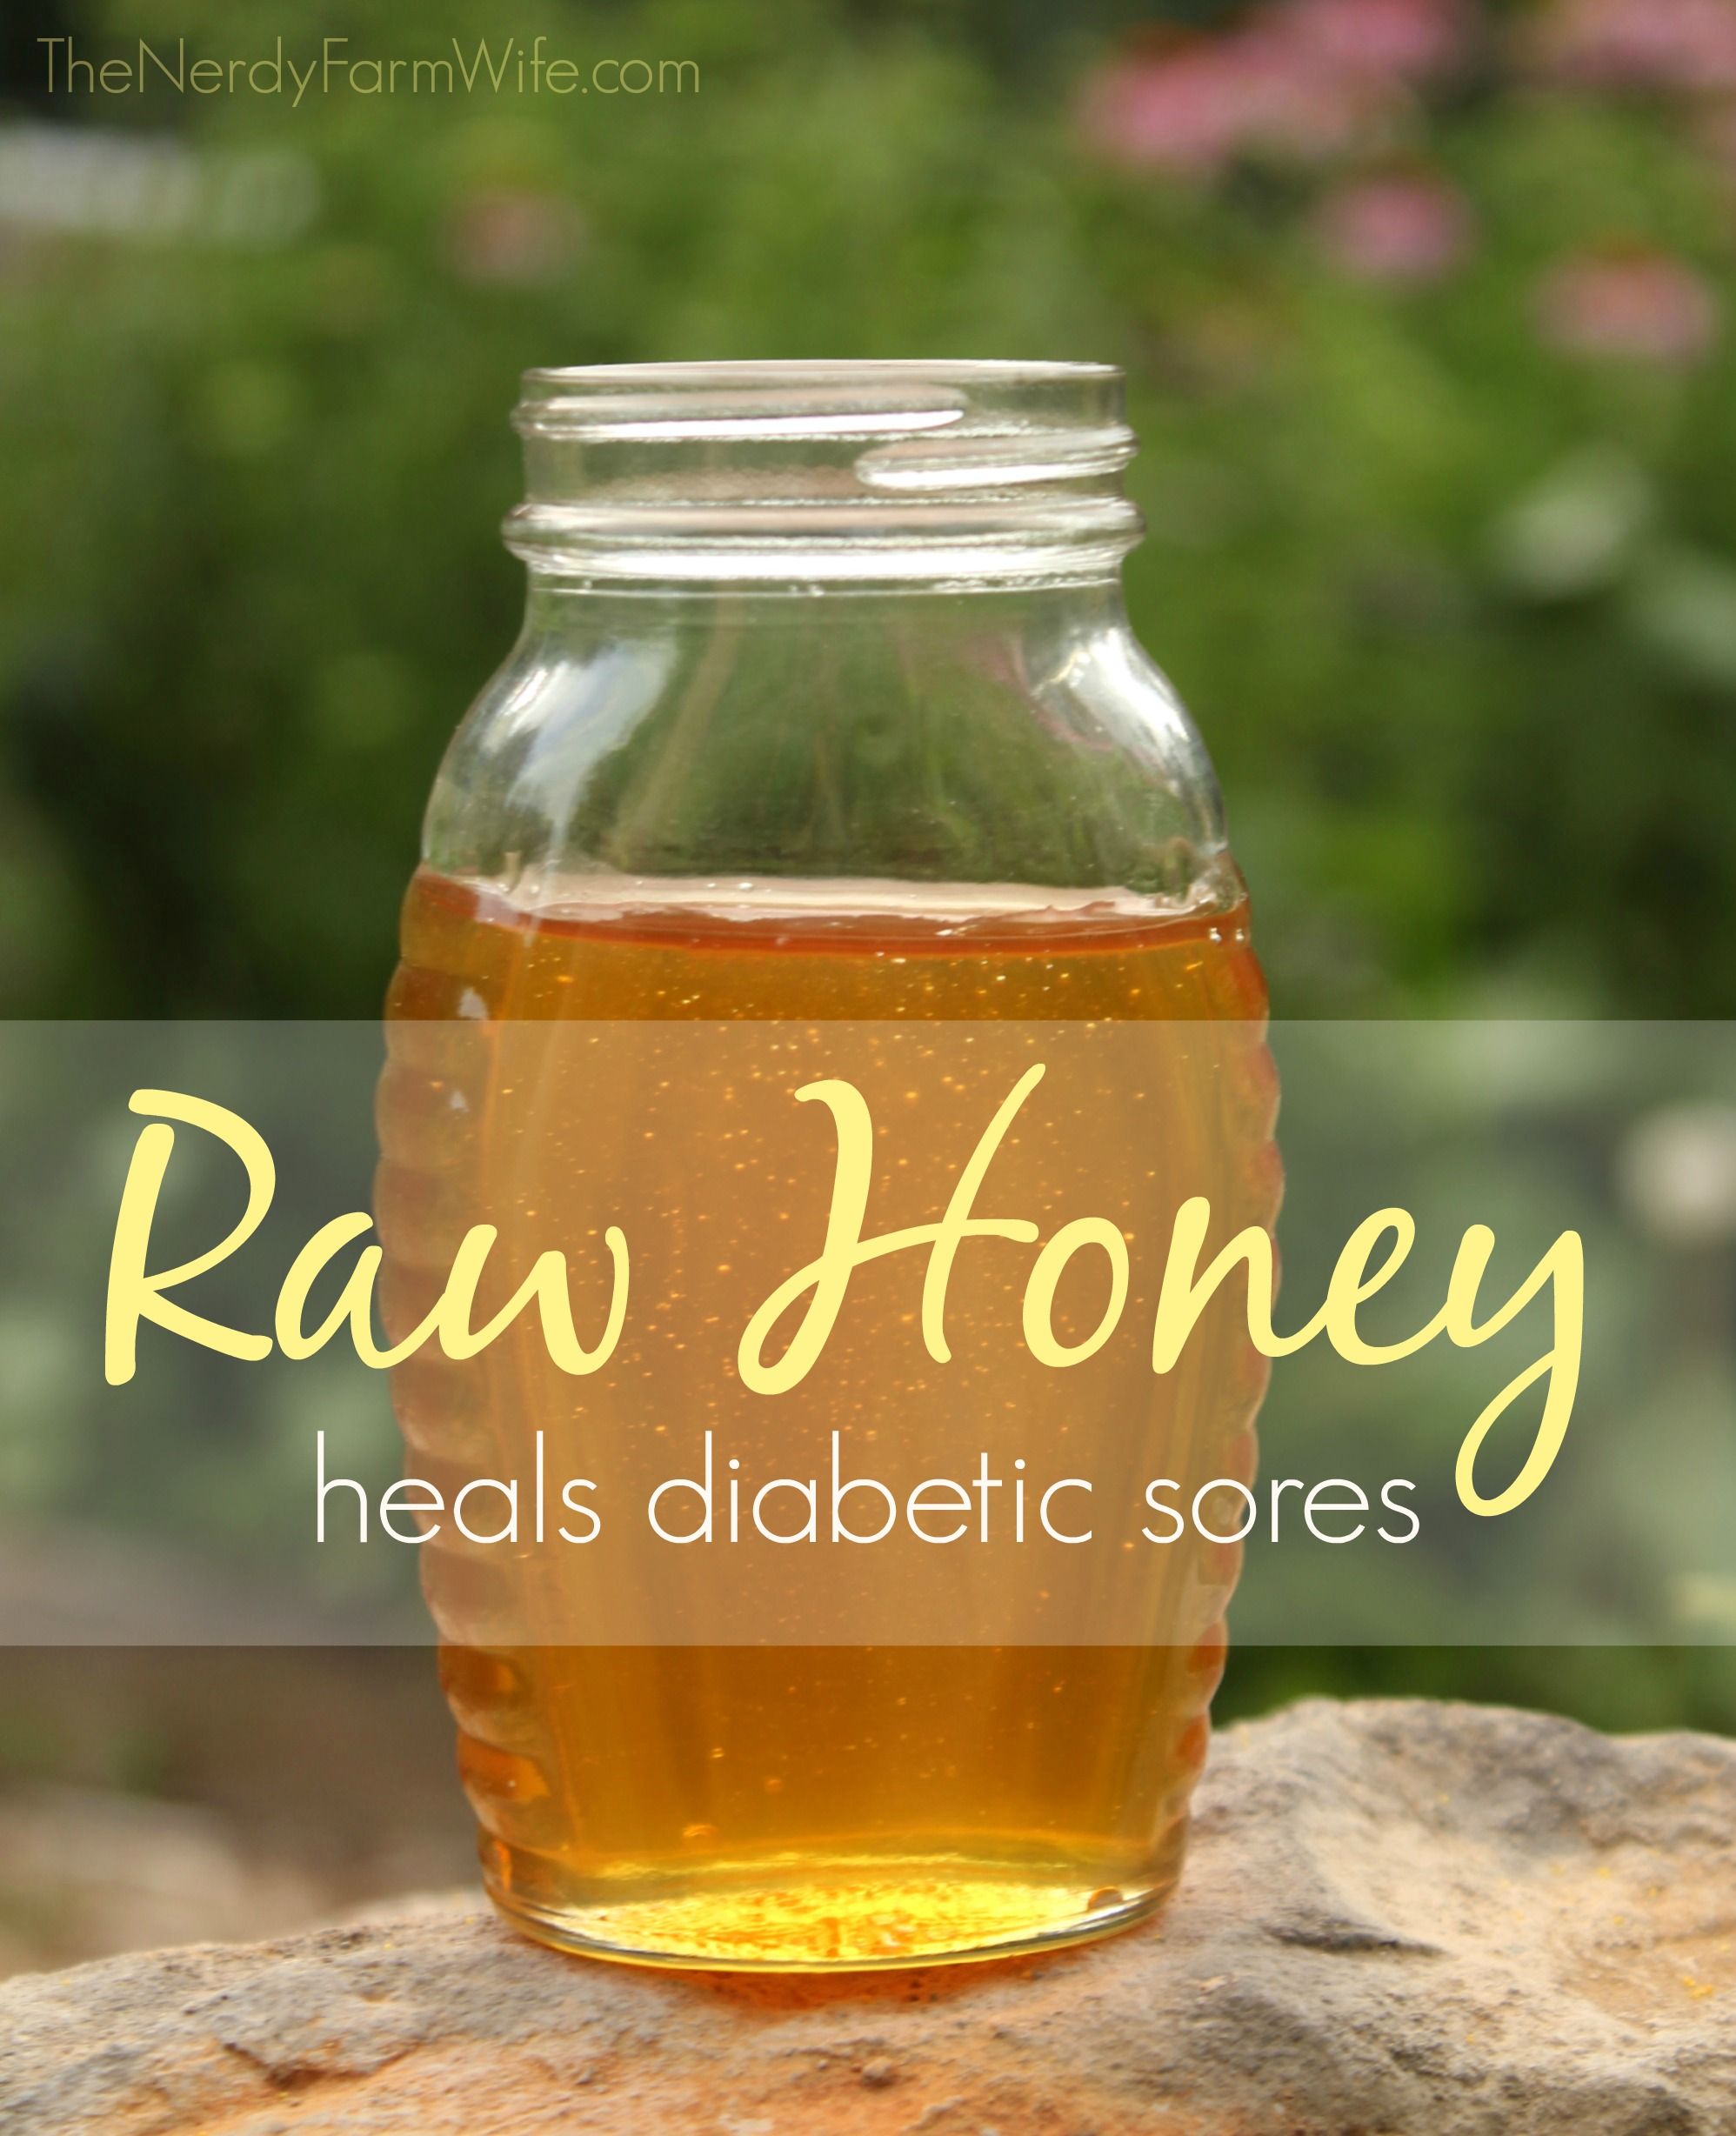 How Raw Honey Helped Save My Diabetic Dad's Foot